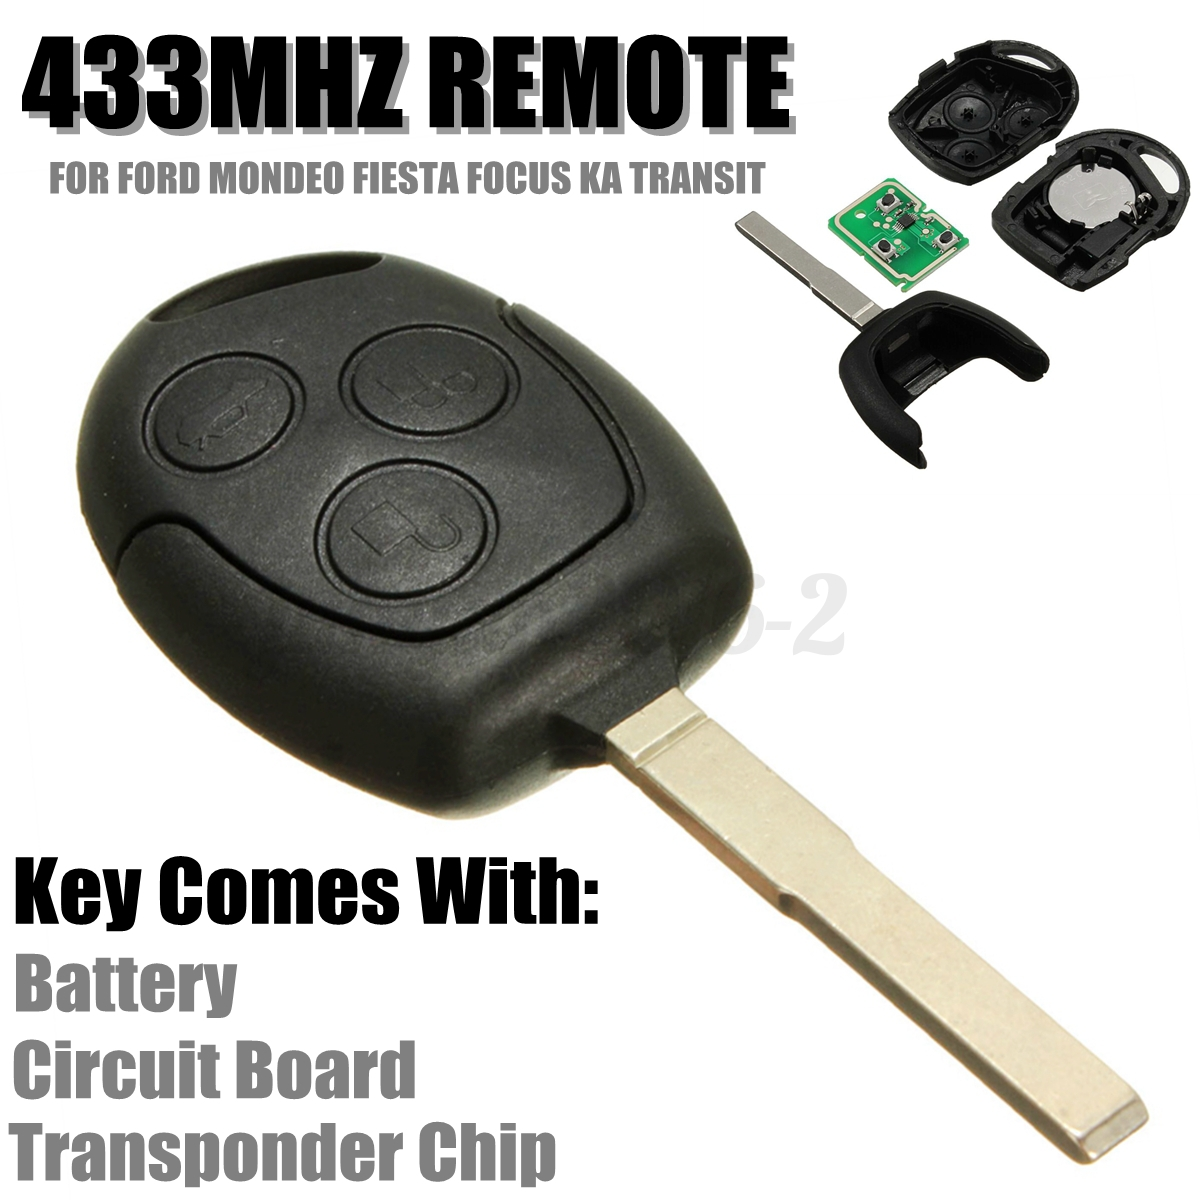 3 button 433mhz remote entry key fob for ford mondeo fiesta focus ka transit k2 ebay. Black Bedroom Furniture Sets. Home Design Ideas